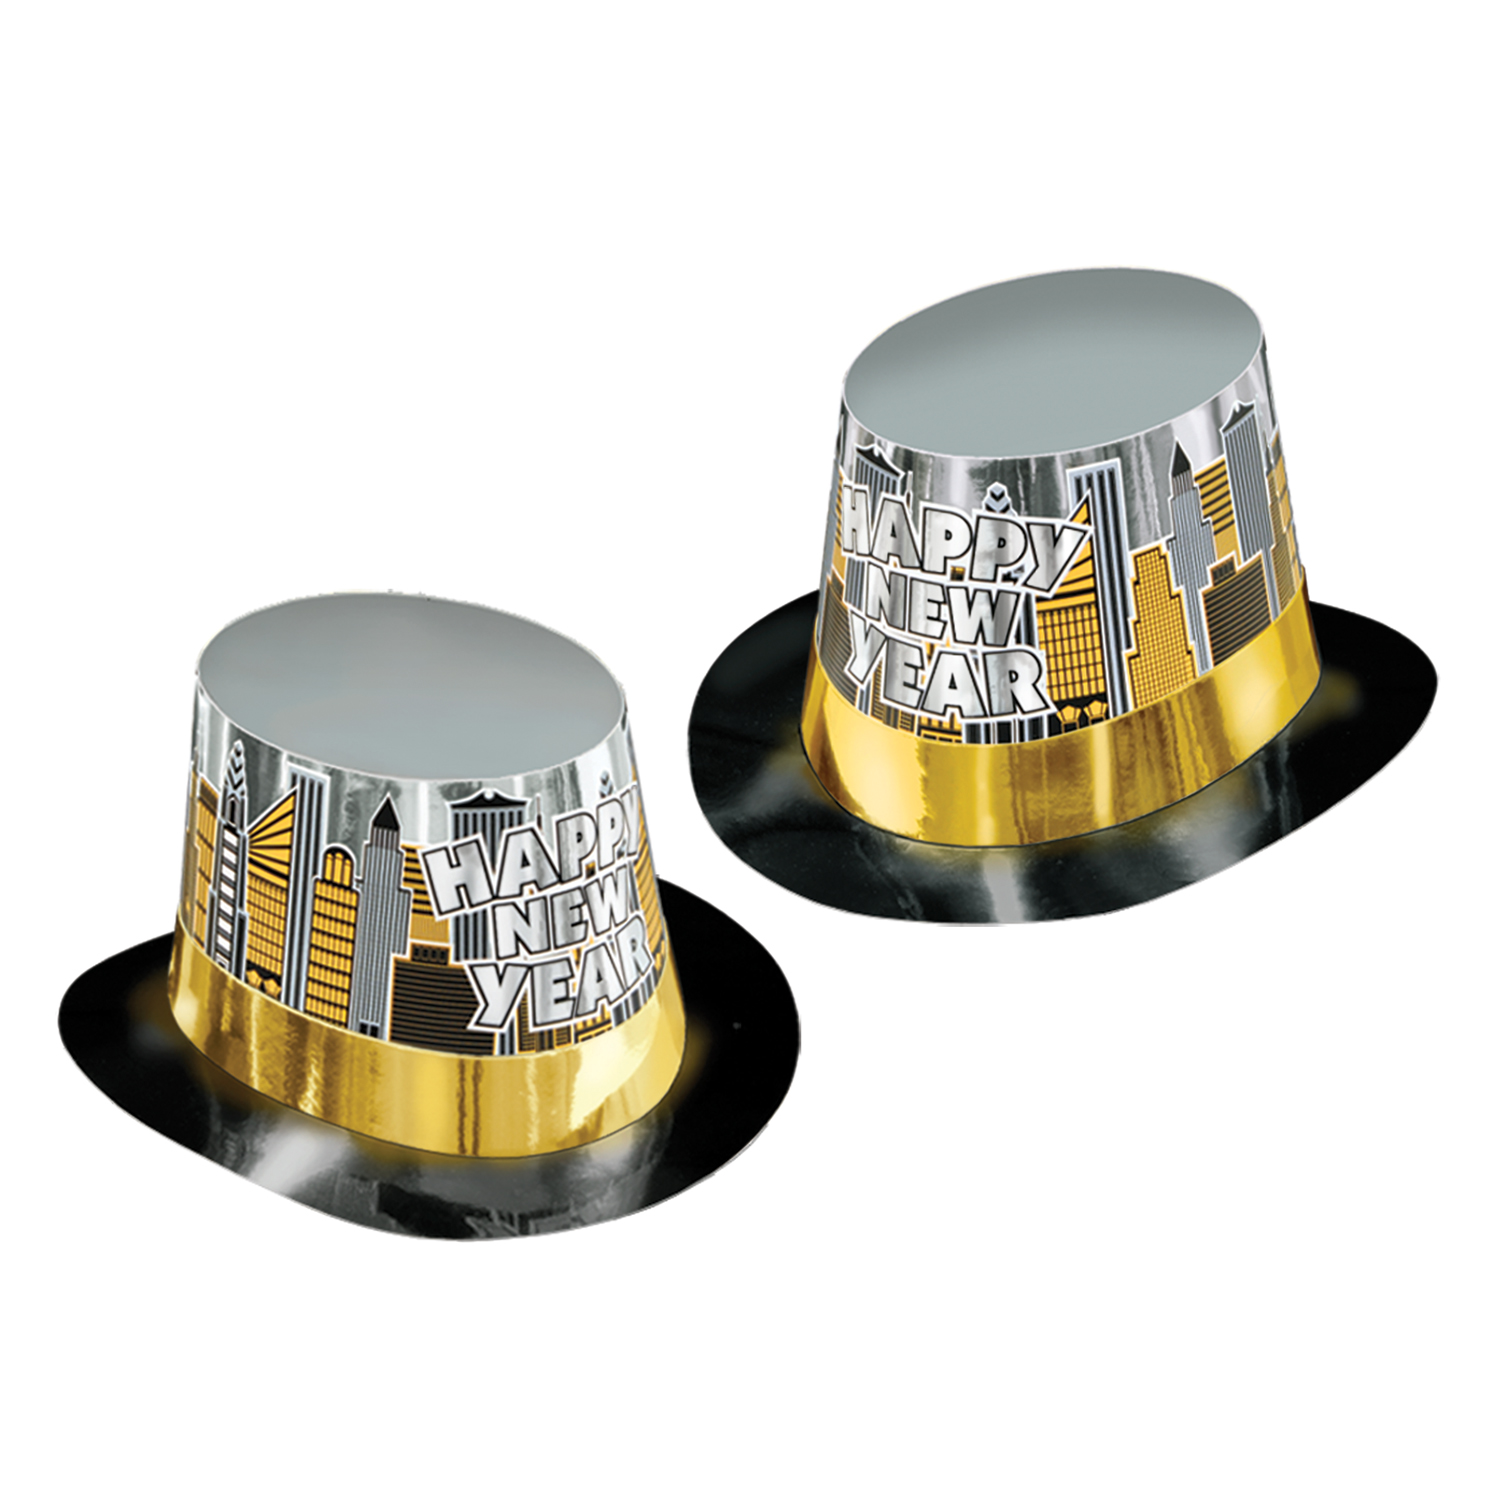 Toast Of The Town Hi-Hat black gold & silver